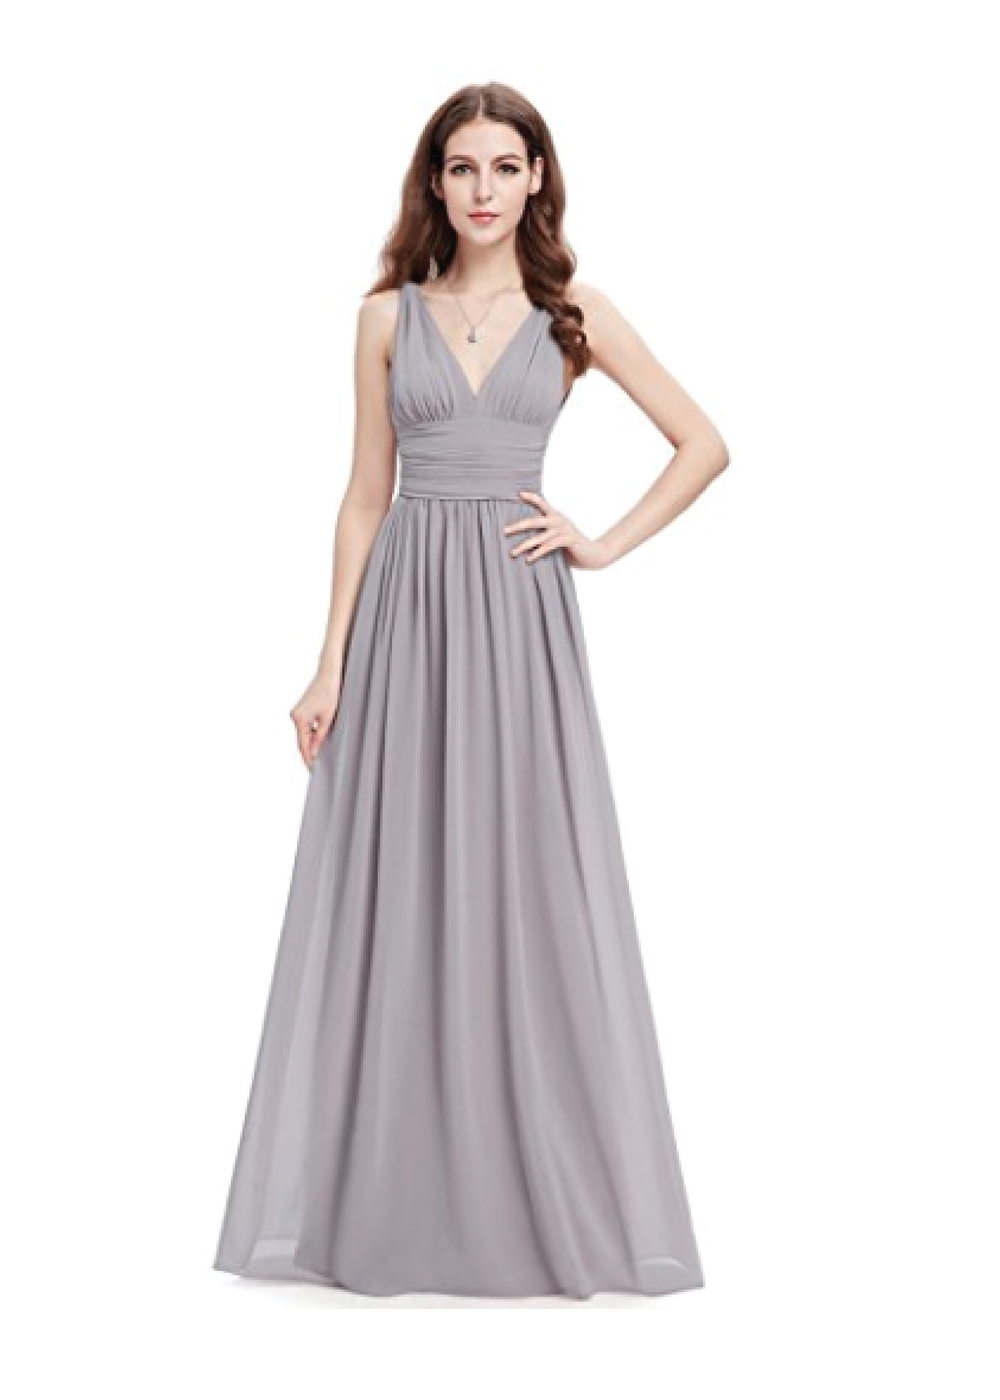 Top Bridesmaid Dresses Under 100-10.png